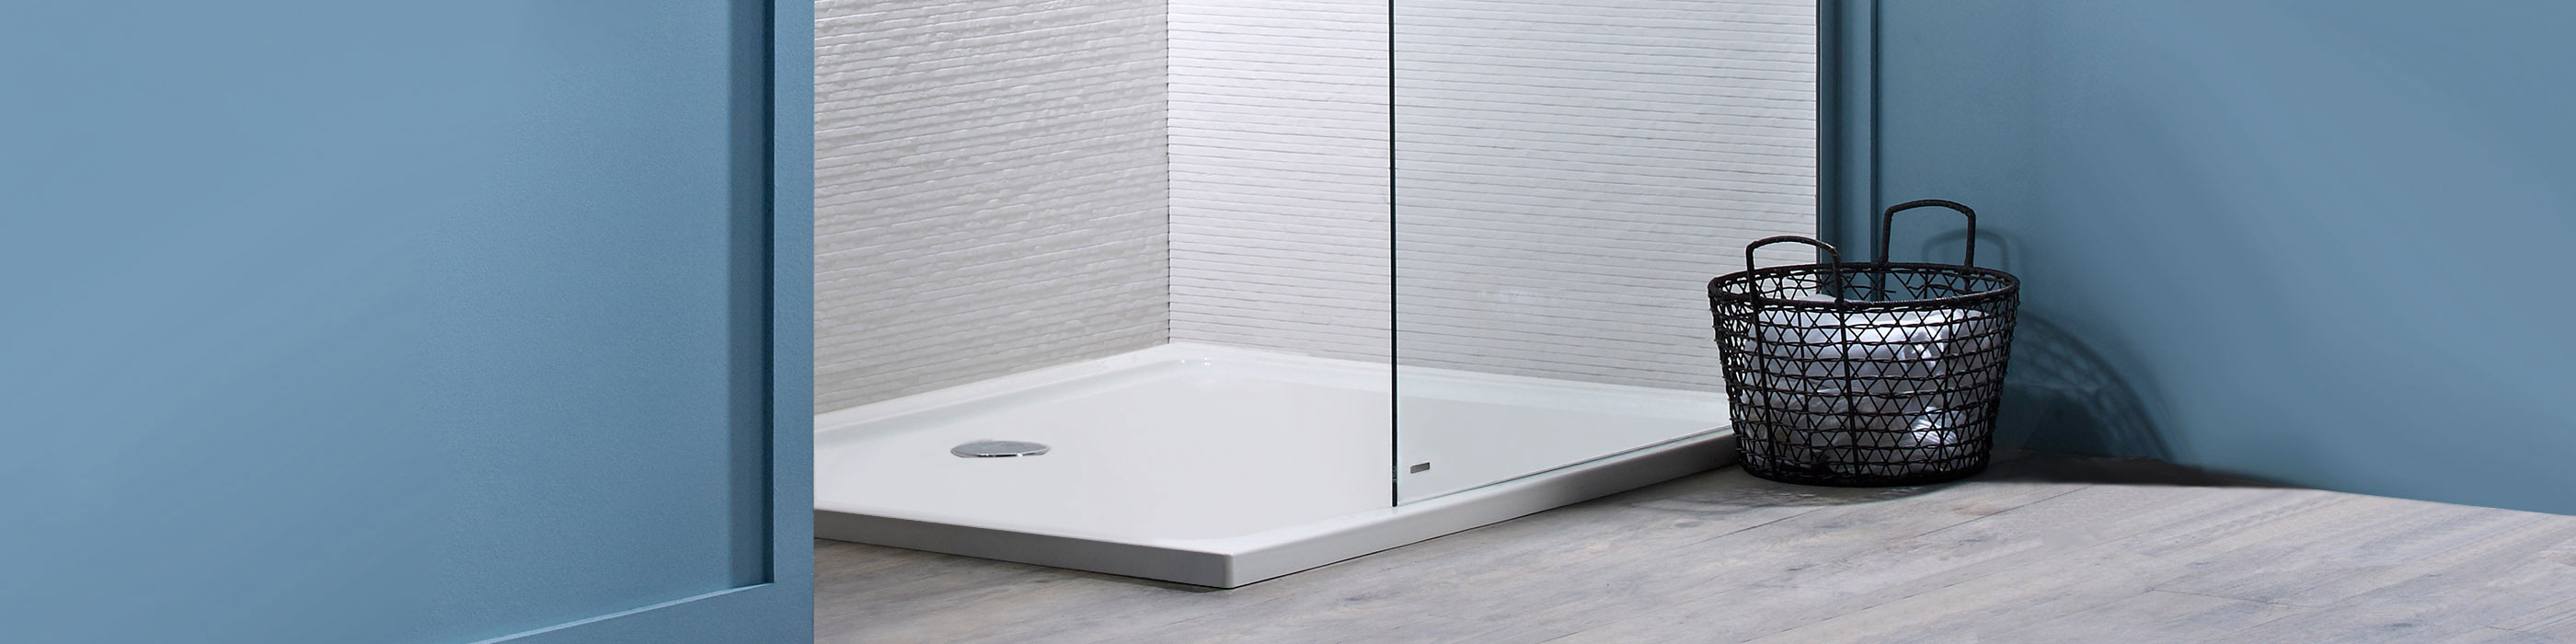 6 Best Shower Pans Reviews Buying Guide 2020